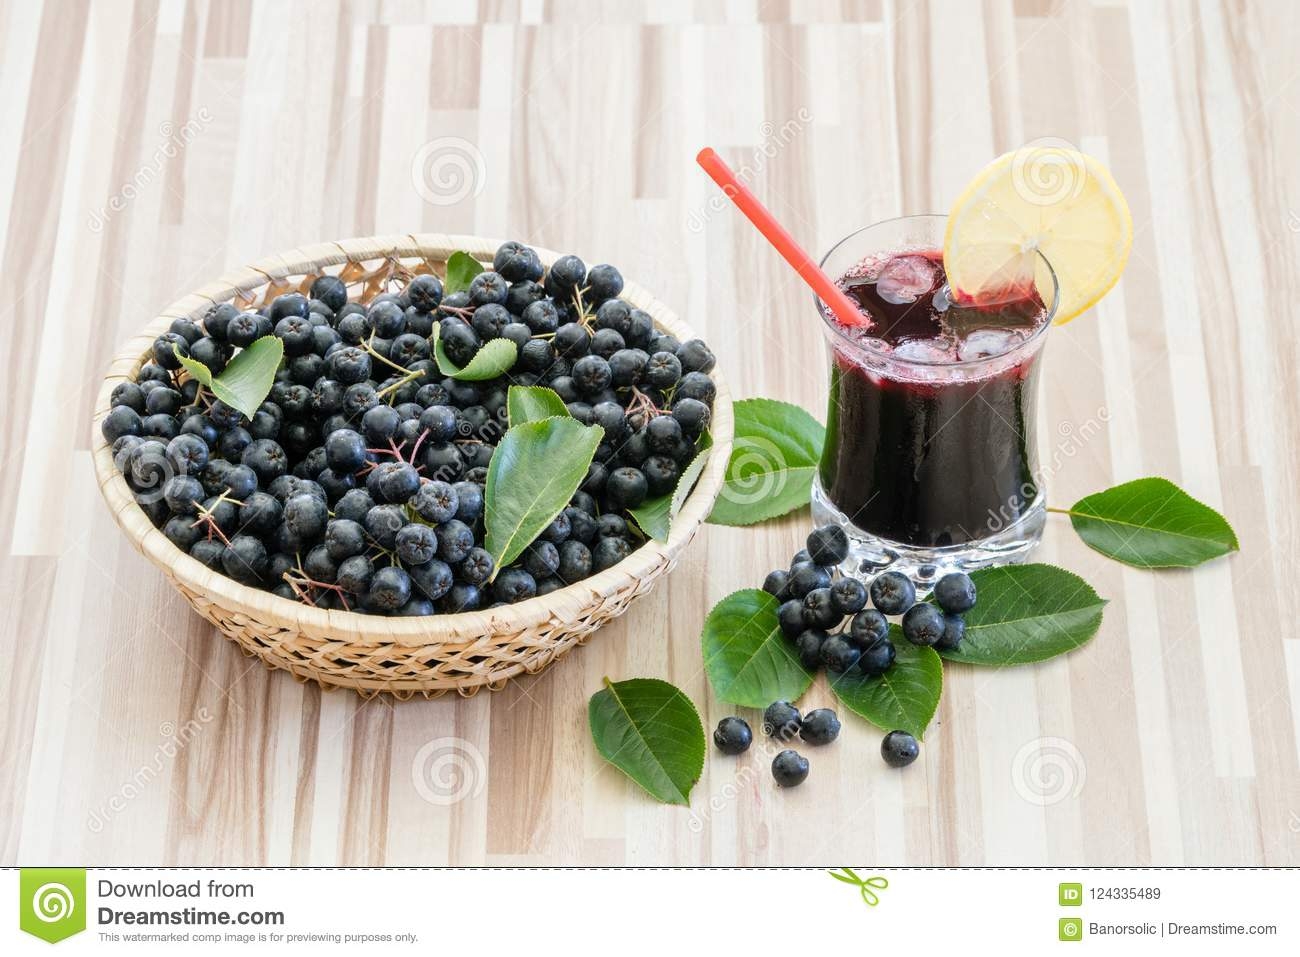 Fresh juice of chokeberry or Aronia melanocarpa in glass with ice, lemon and straw.